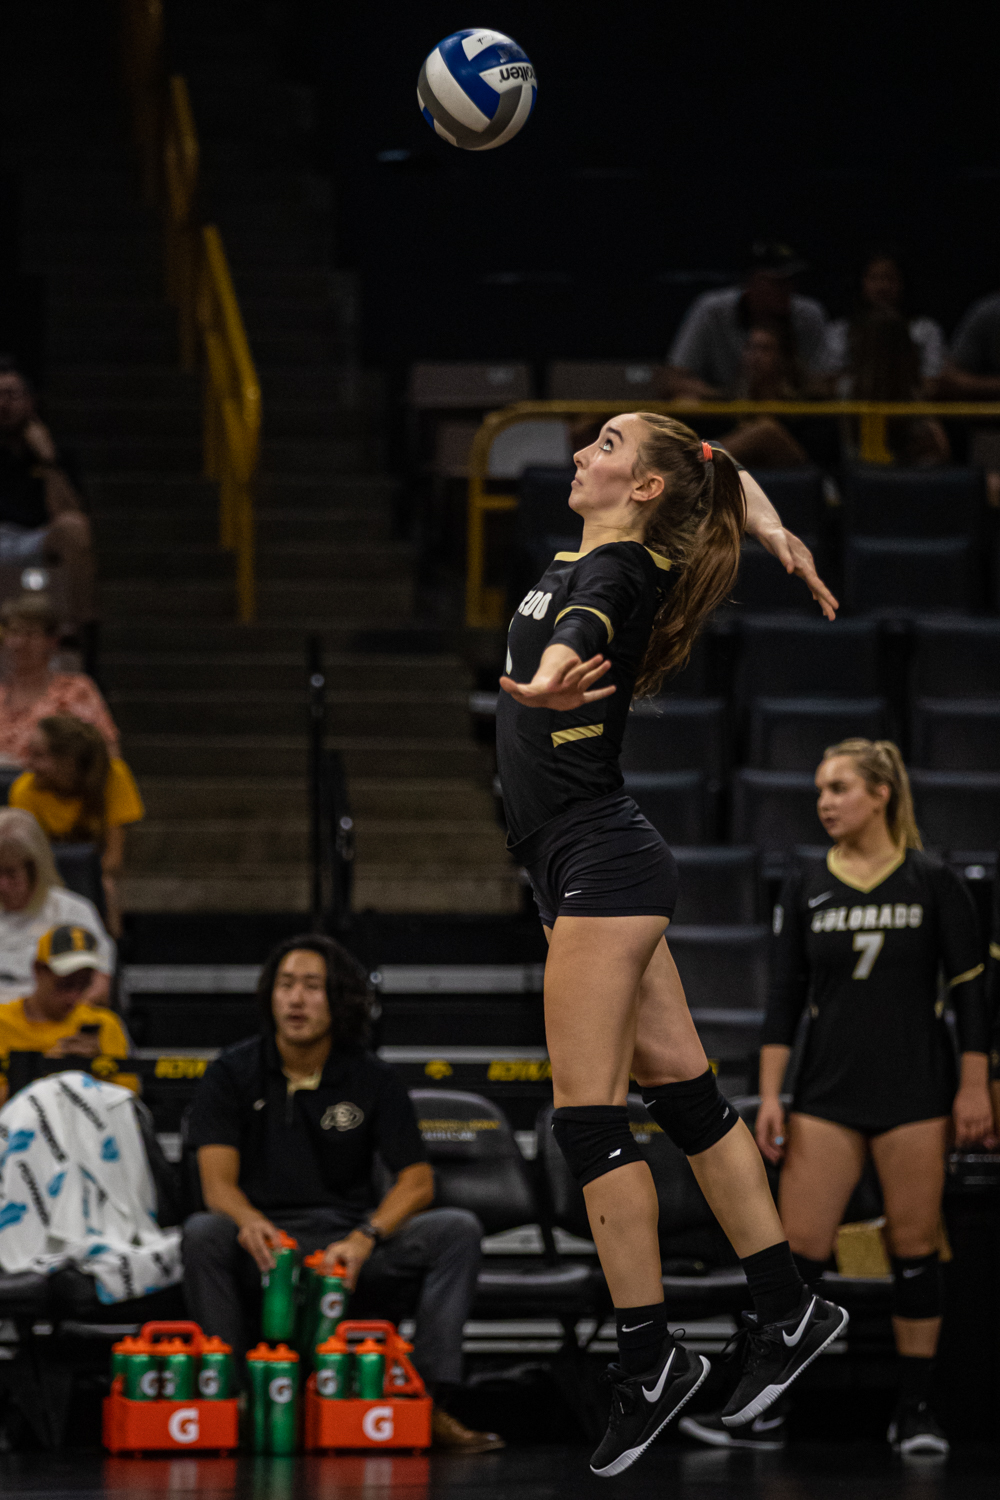 Colorado+outside+hitter+Zoe+Neverdowski+serves+the+ball+during+a+volleyball+match+between+Iowa+and+Colorado+in+Carver-Hawkeye+Arena+on+Friday%2C+September+6%2C+2019.+The+Hawkeyes+dropped+their+season+opener+to+the+Buffaloes%2C+3-0.